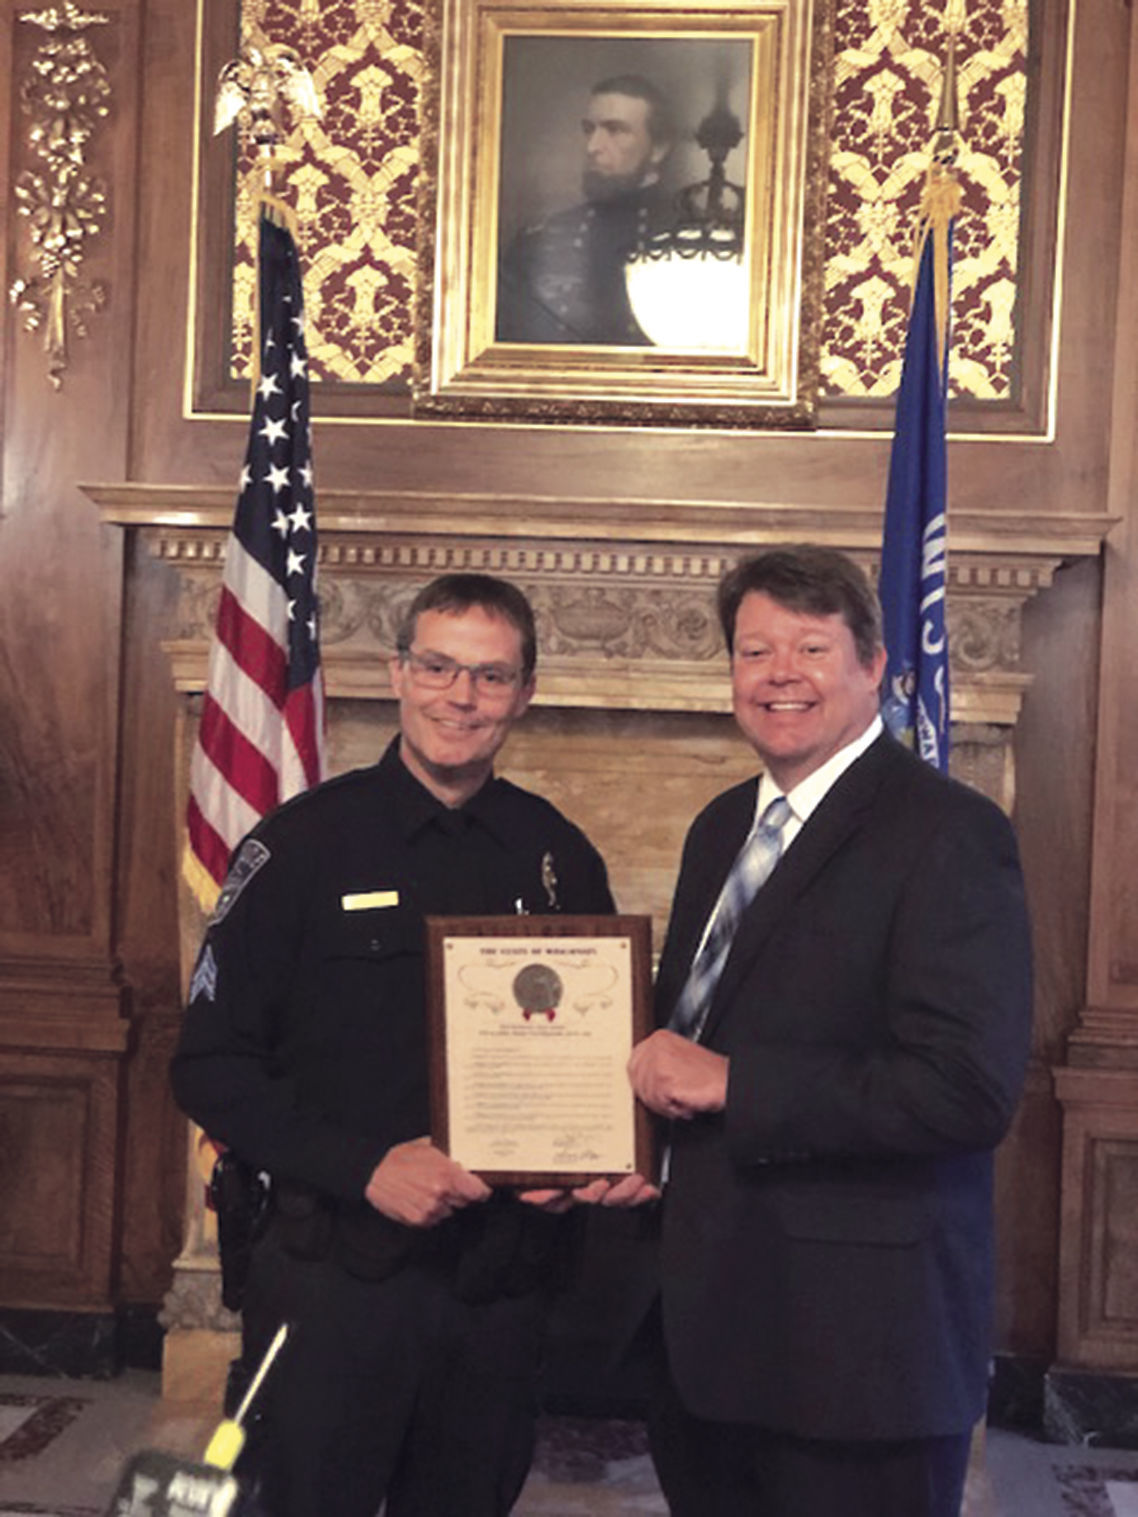 police sergeant honored